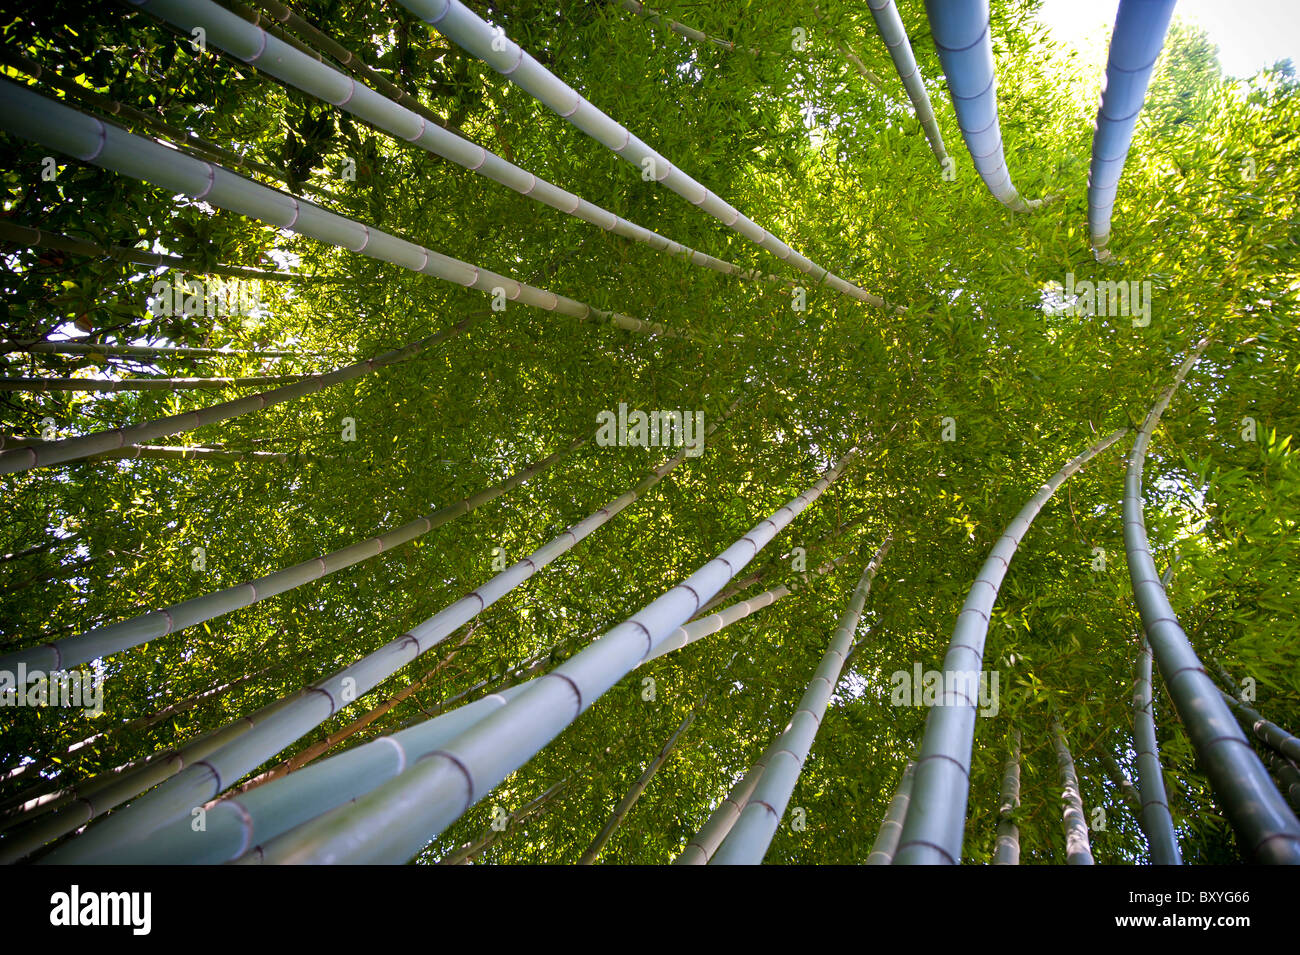 Bamboo canes Phyllostachys Pubescens Gramineae - Stock Image